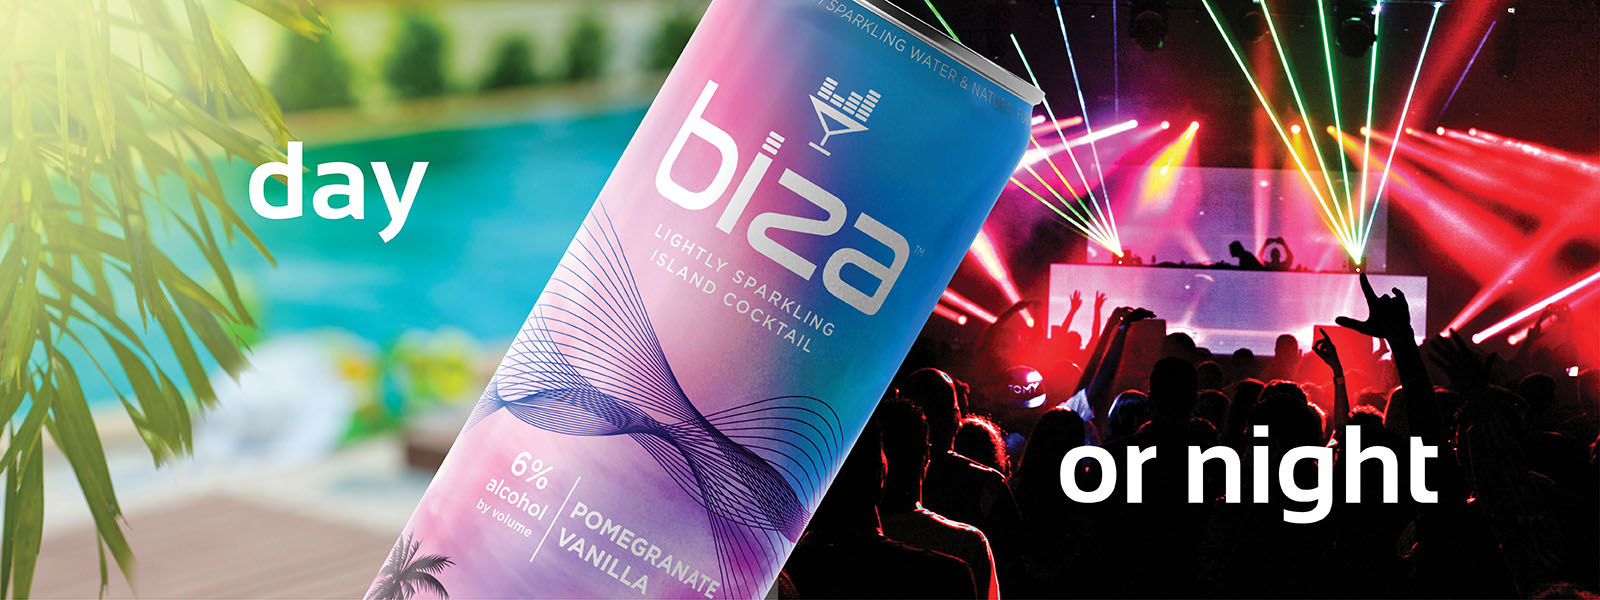 Day or night, Biza cocktails are the perfect drink.